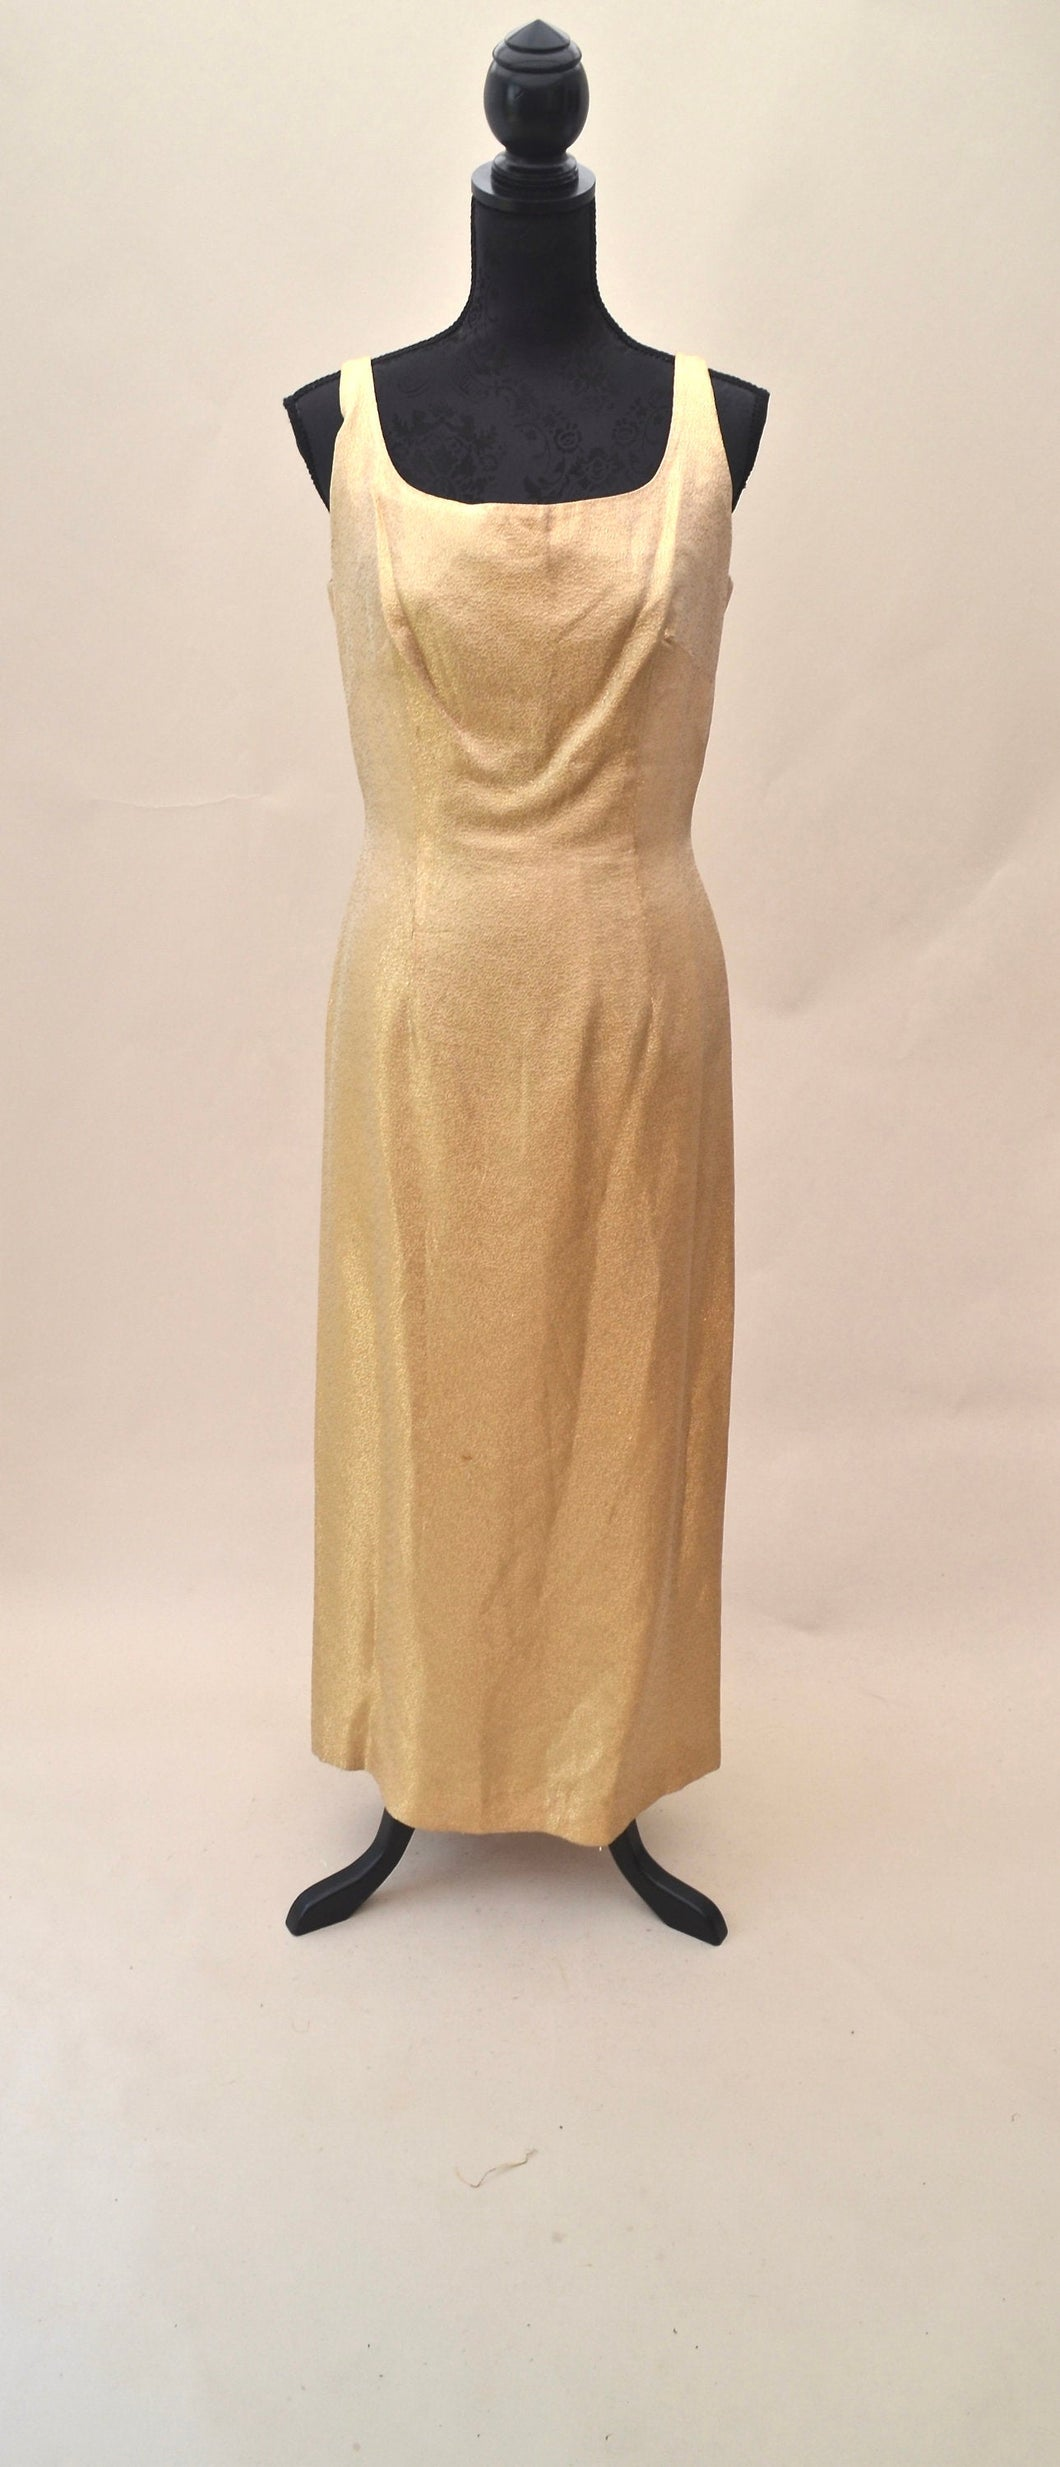 1970s maxi party dress with side split and slight plunge back | Est UK size 10